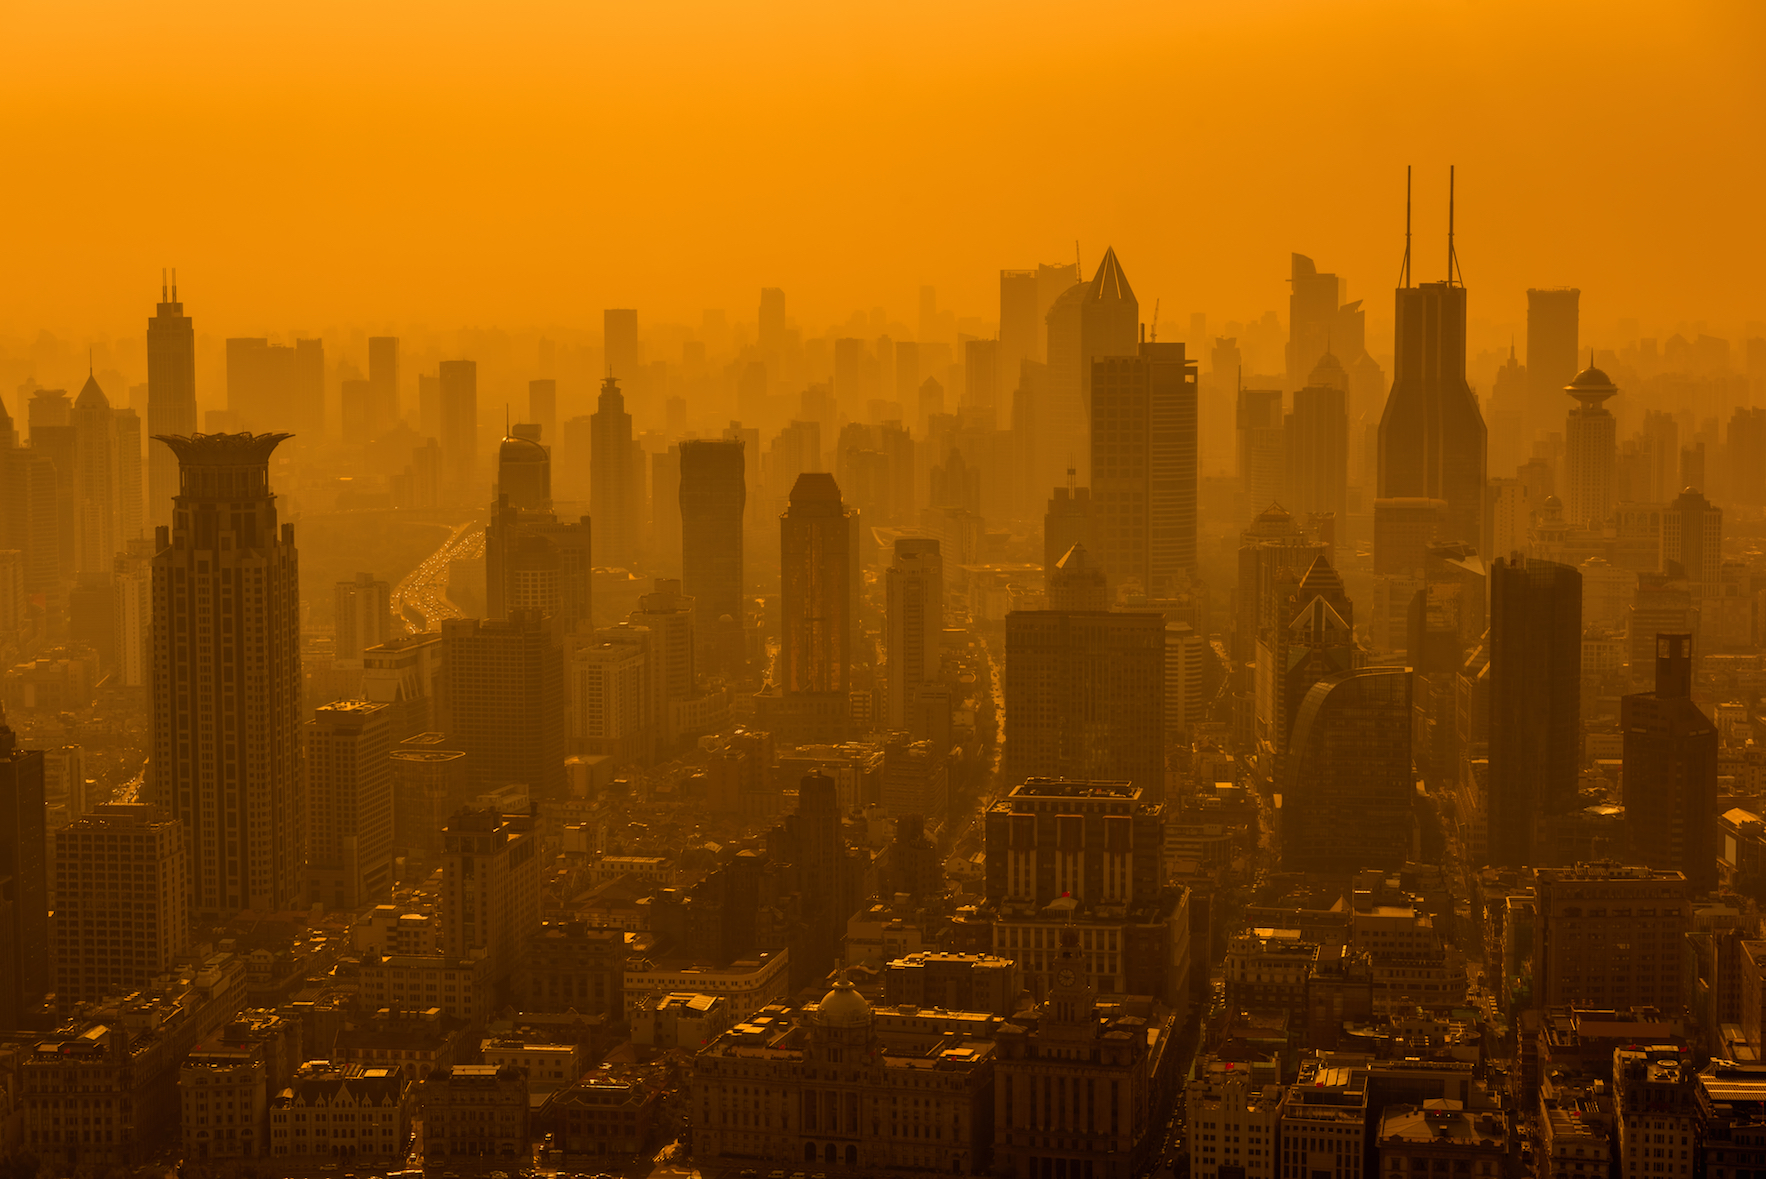 According to a new study, global climate change is responsible for worsening the impact of pollution in China, causing a thick winter haze of smog.